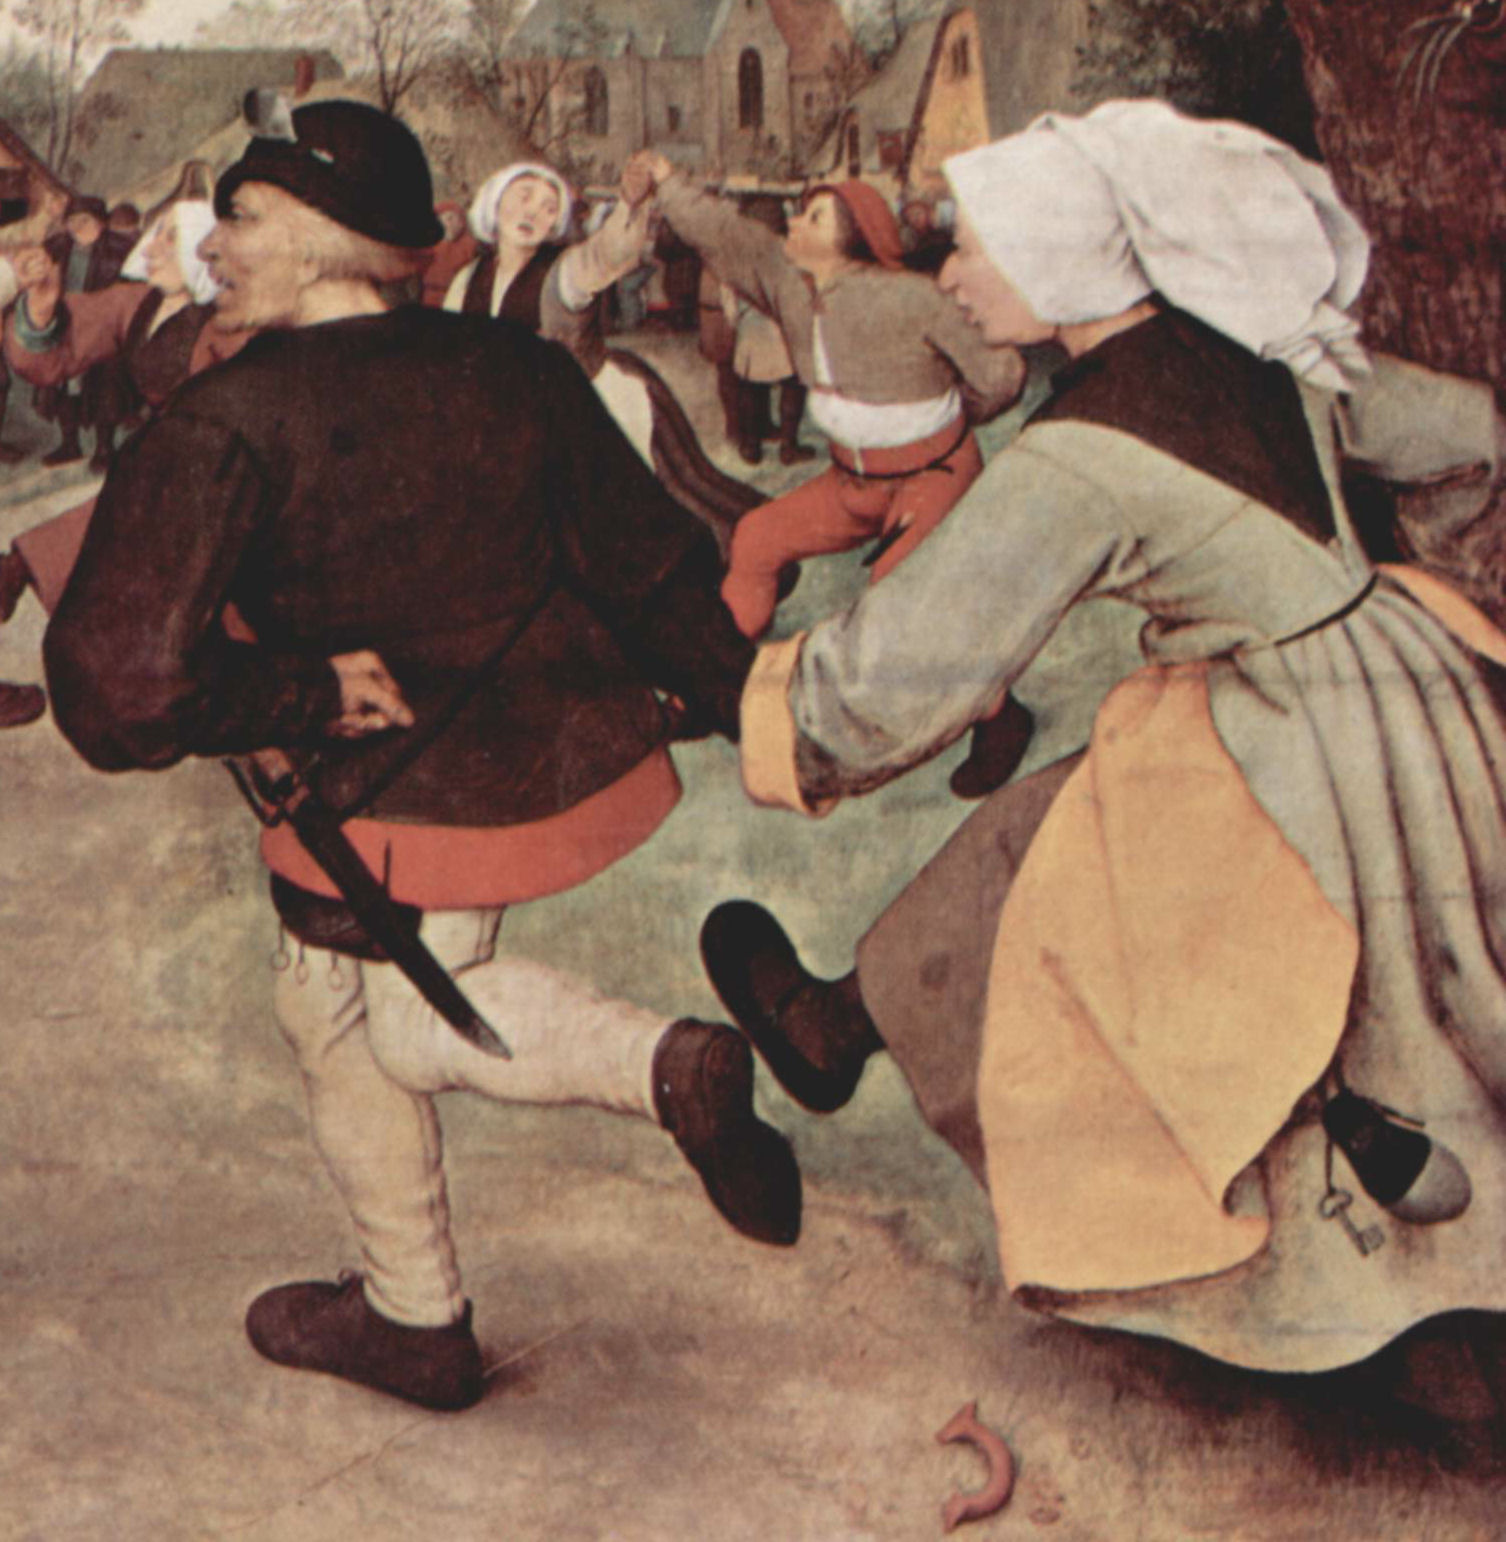 Pieter_Bruegel_the_Elder_014_detail1.jpg